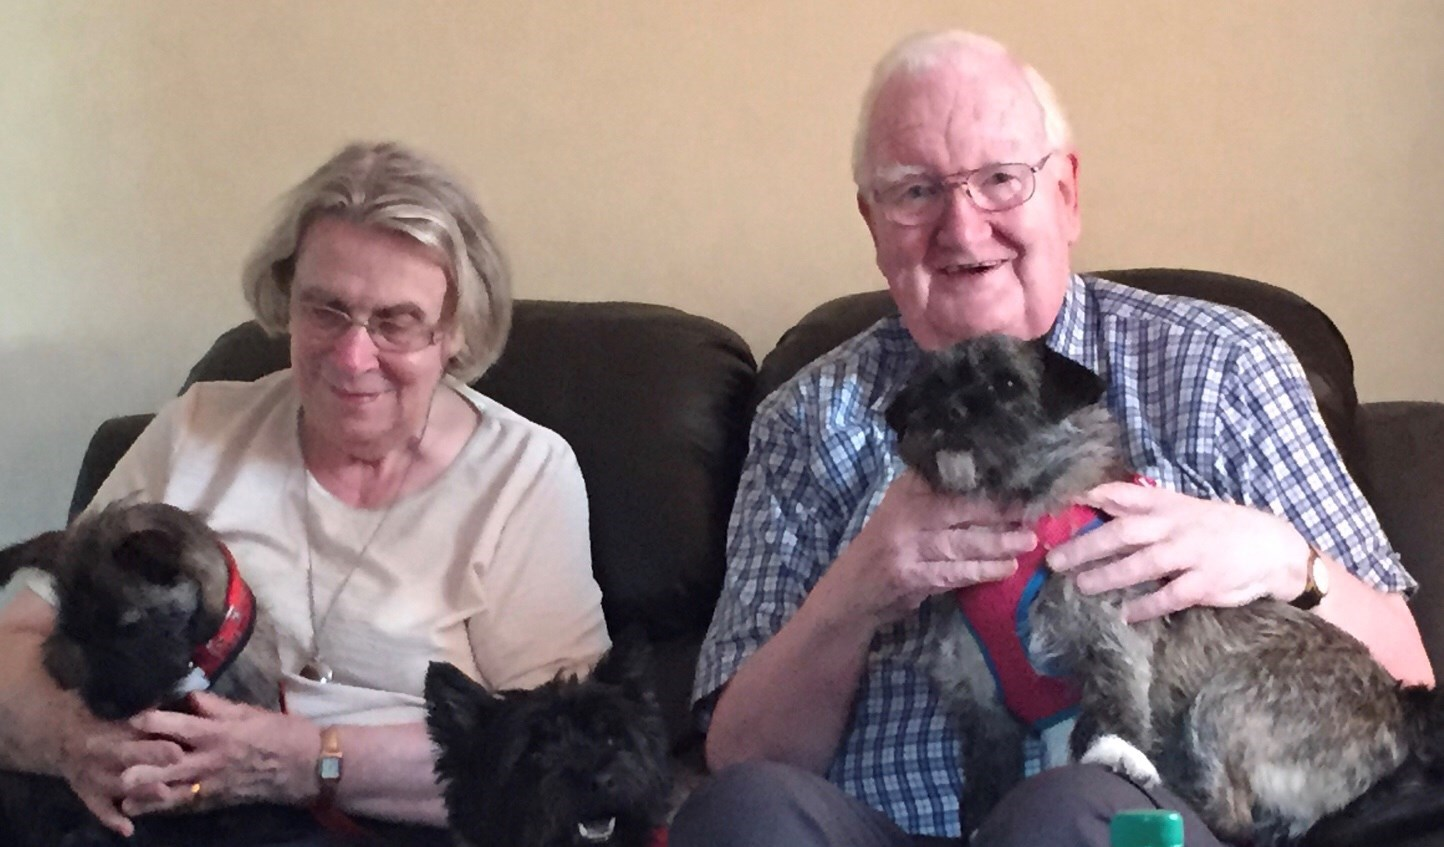 Mom always missed having a dog, but our 3 kept them busy - dad secretly loved having them around!